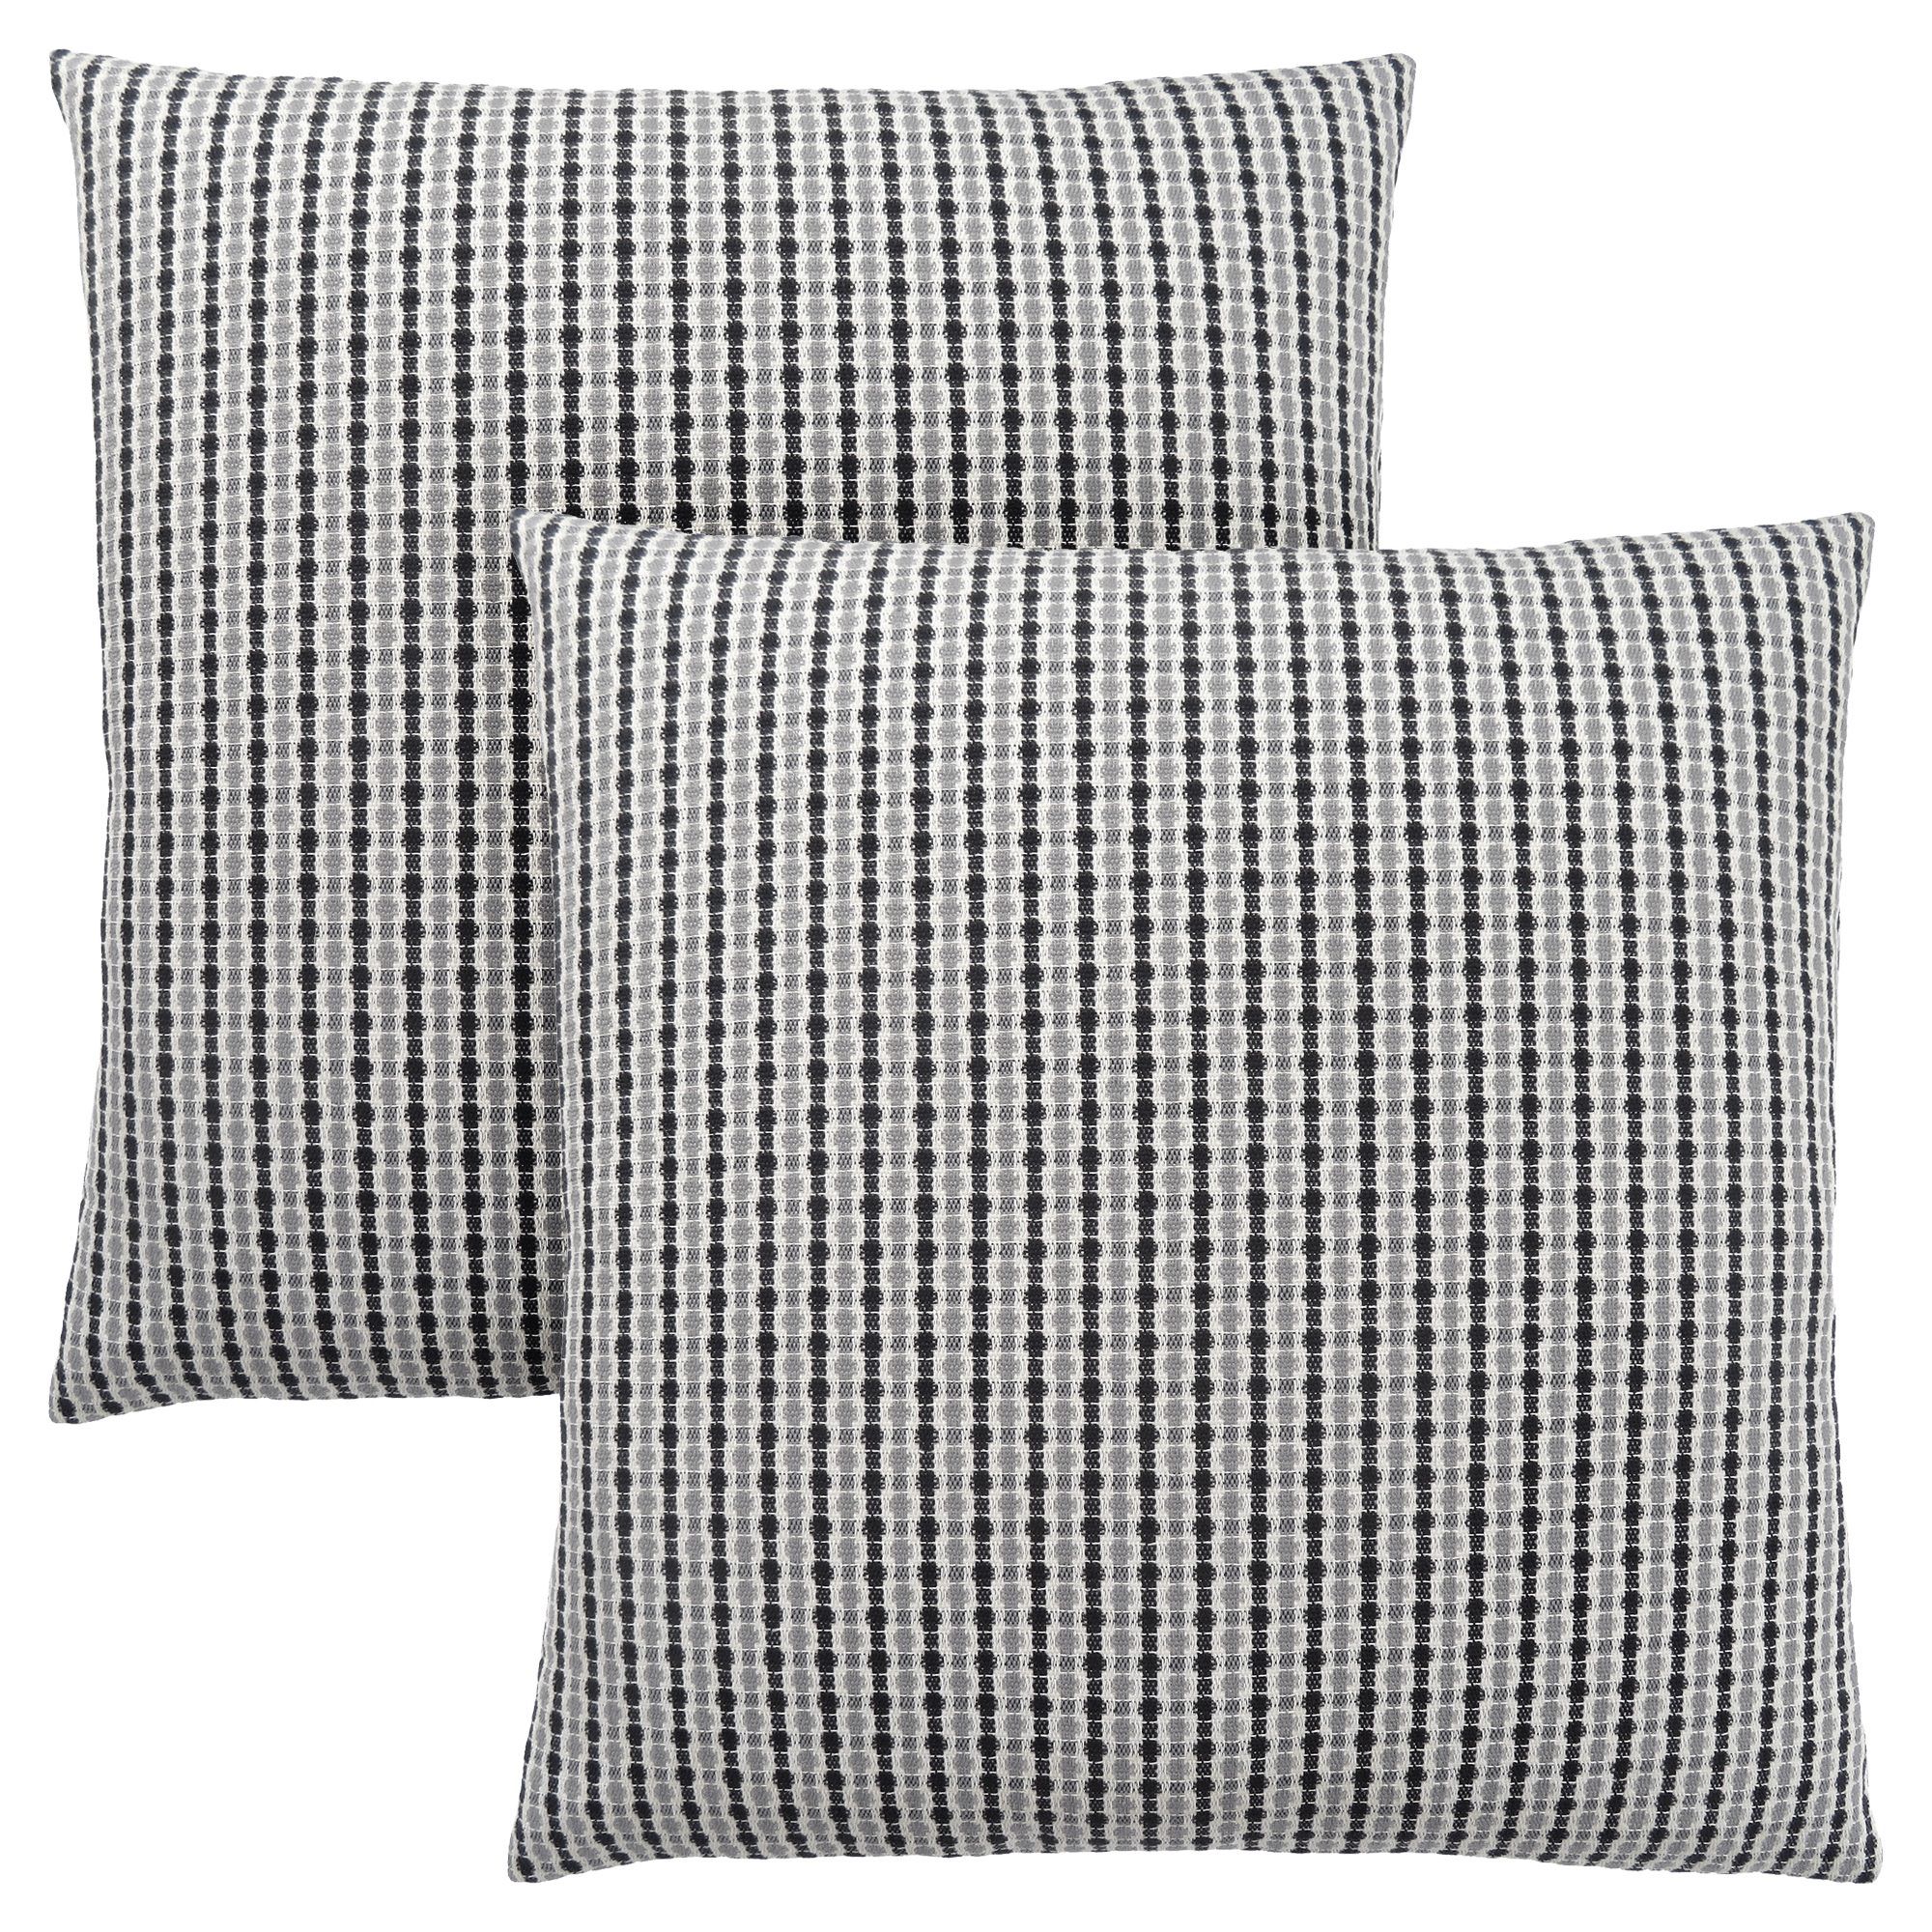 "PILLOW - 18""X 18"" / LIGHT GREY / BLACK ABSTRACT DOT / 2PC"